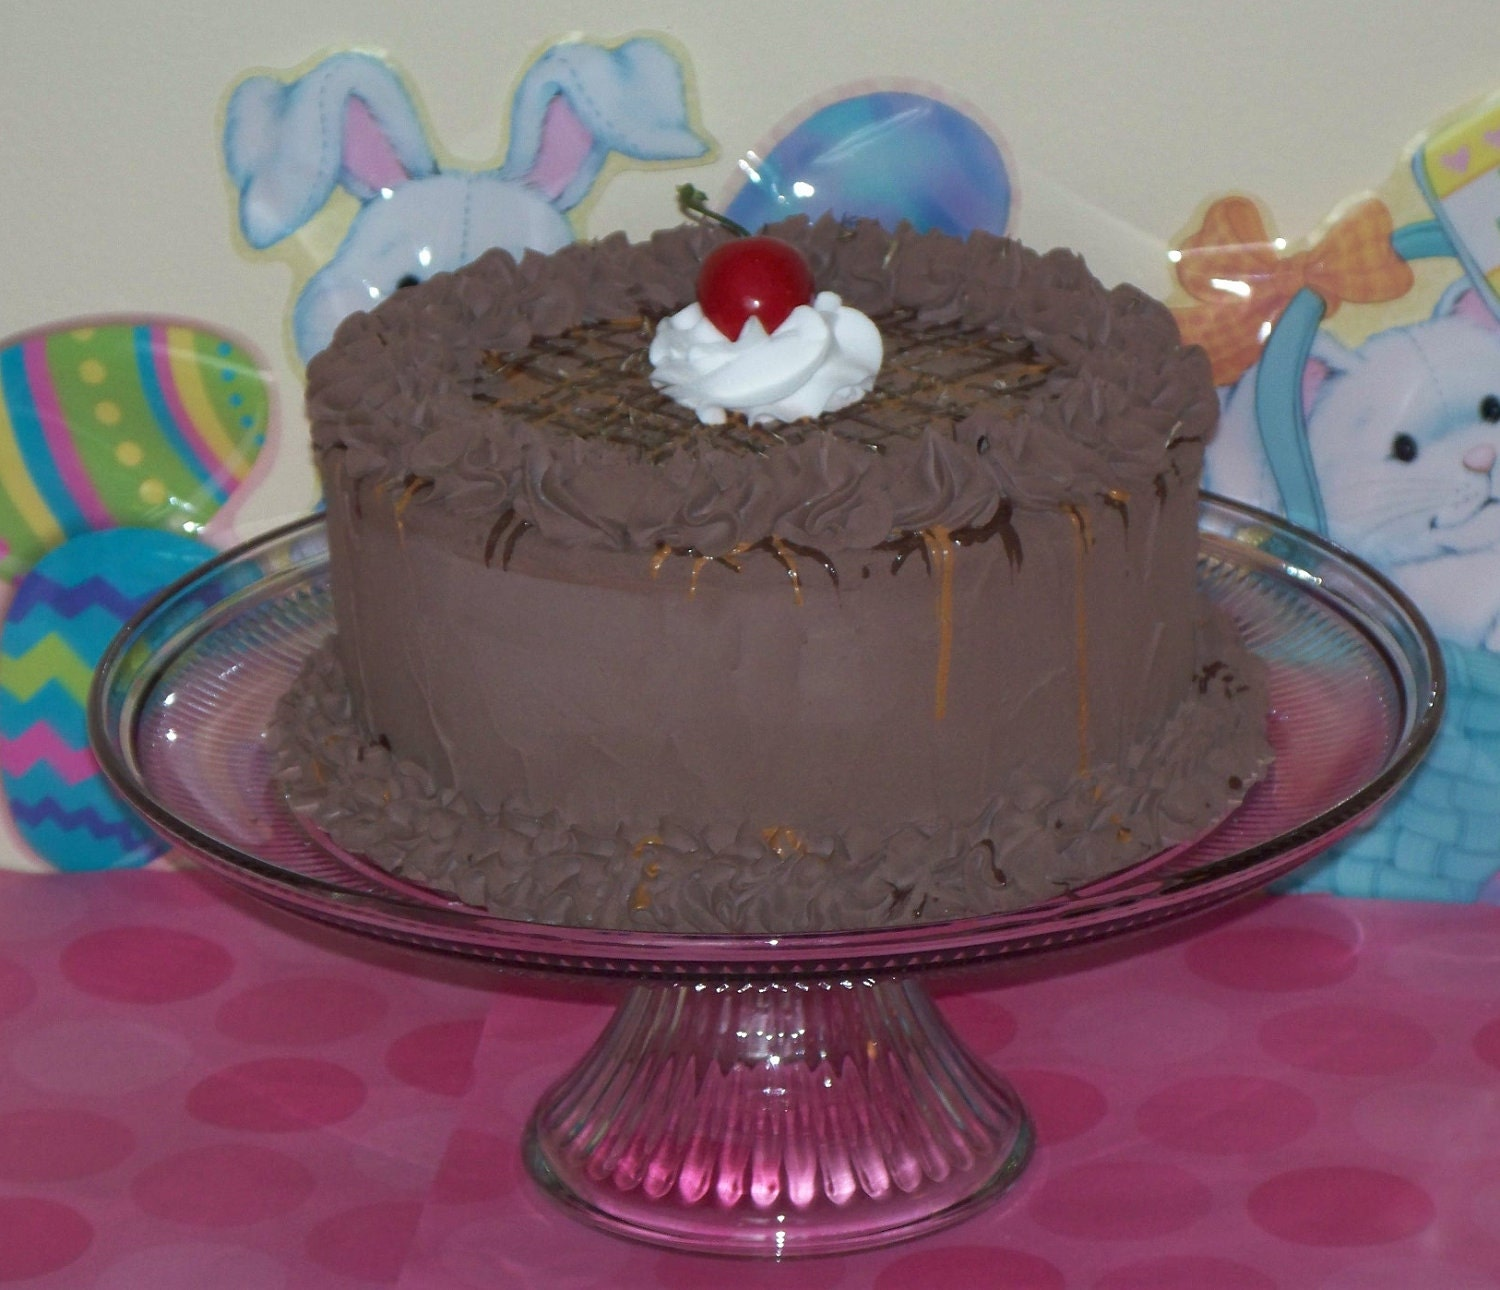 Fake Faux Chocolate Turtle Cake Chocolate Caramel Drizzle Pecan Slivers Cherry on Top House Staging, Home Decor Centerpiece Stage Photo Prop